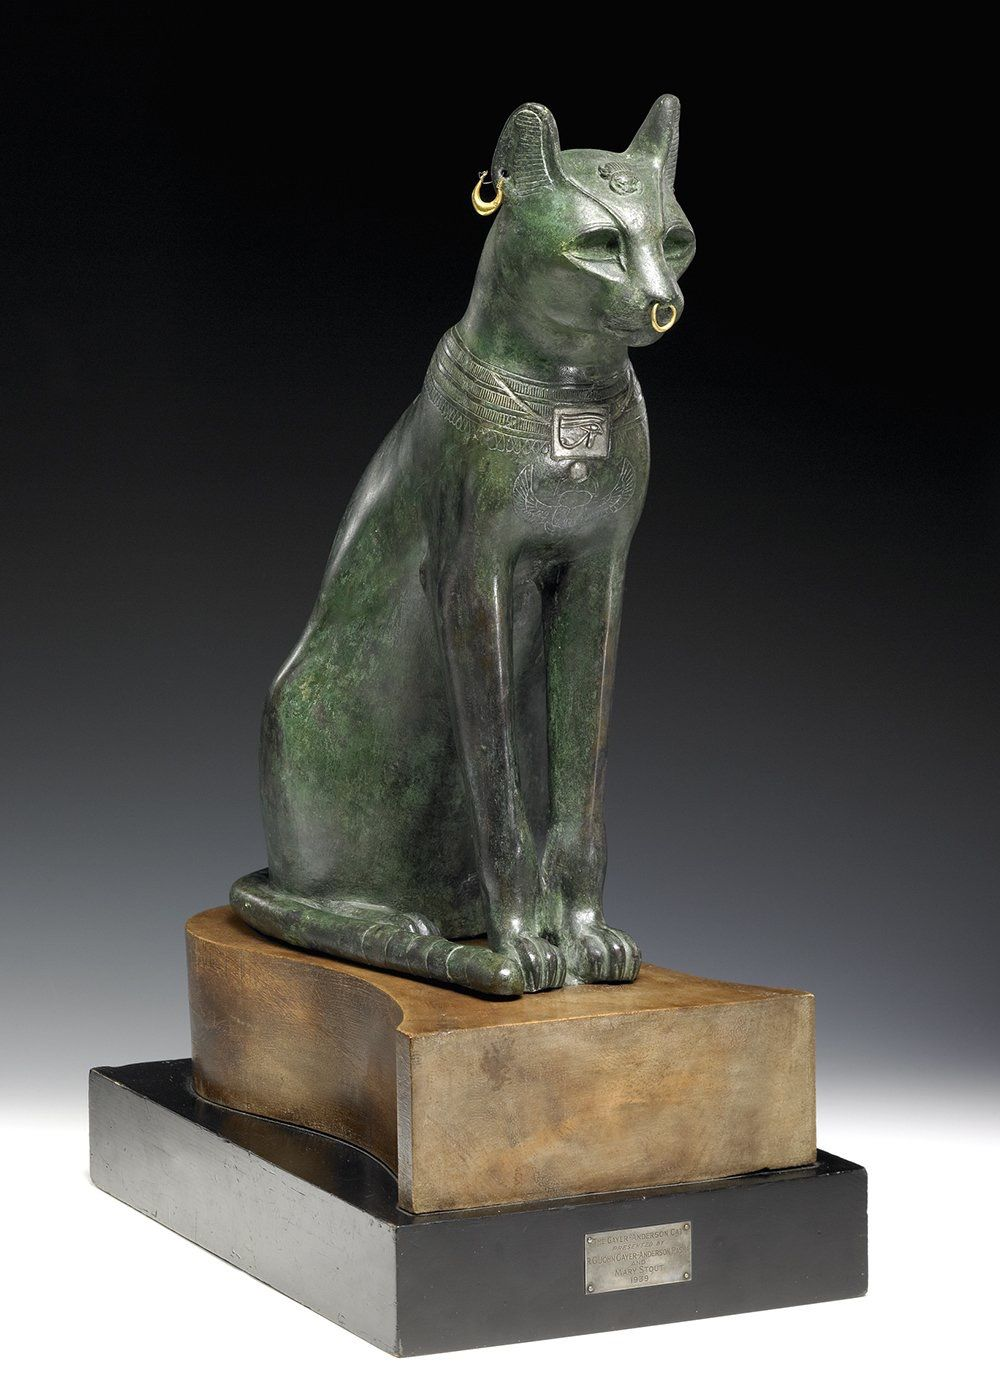 Pin by b on Cat Saturday Cats in ancient egypt, Egyptian